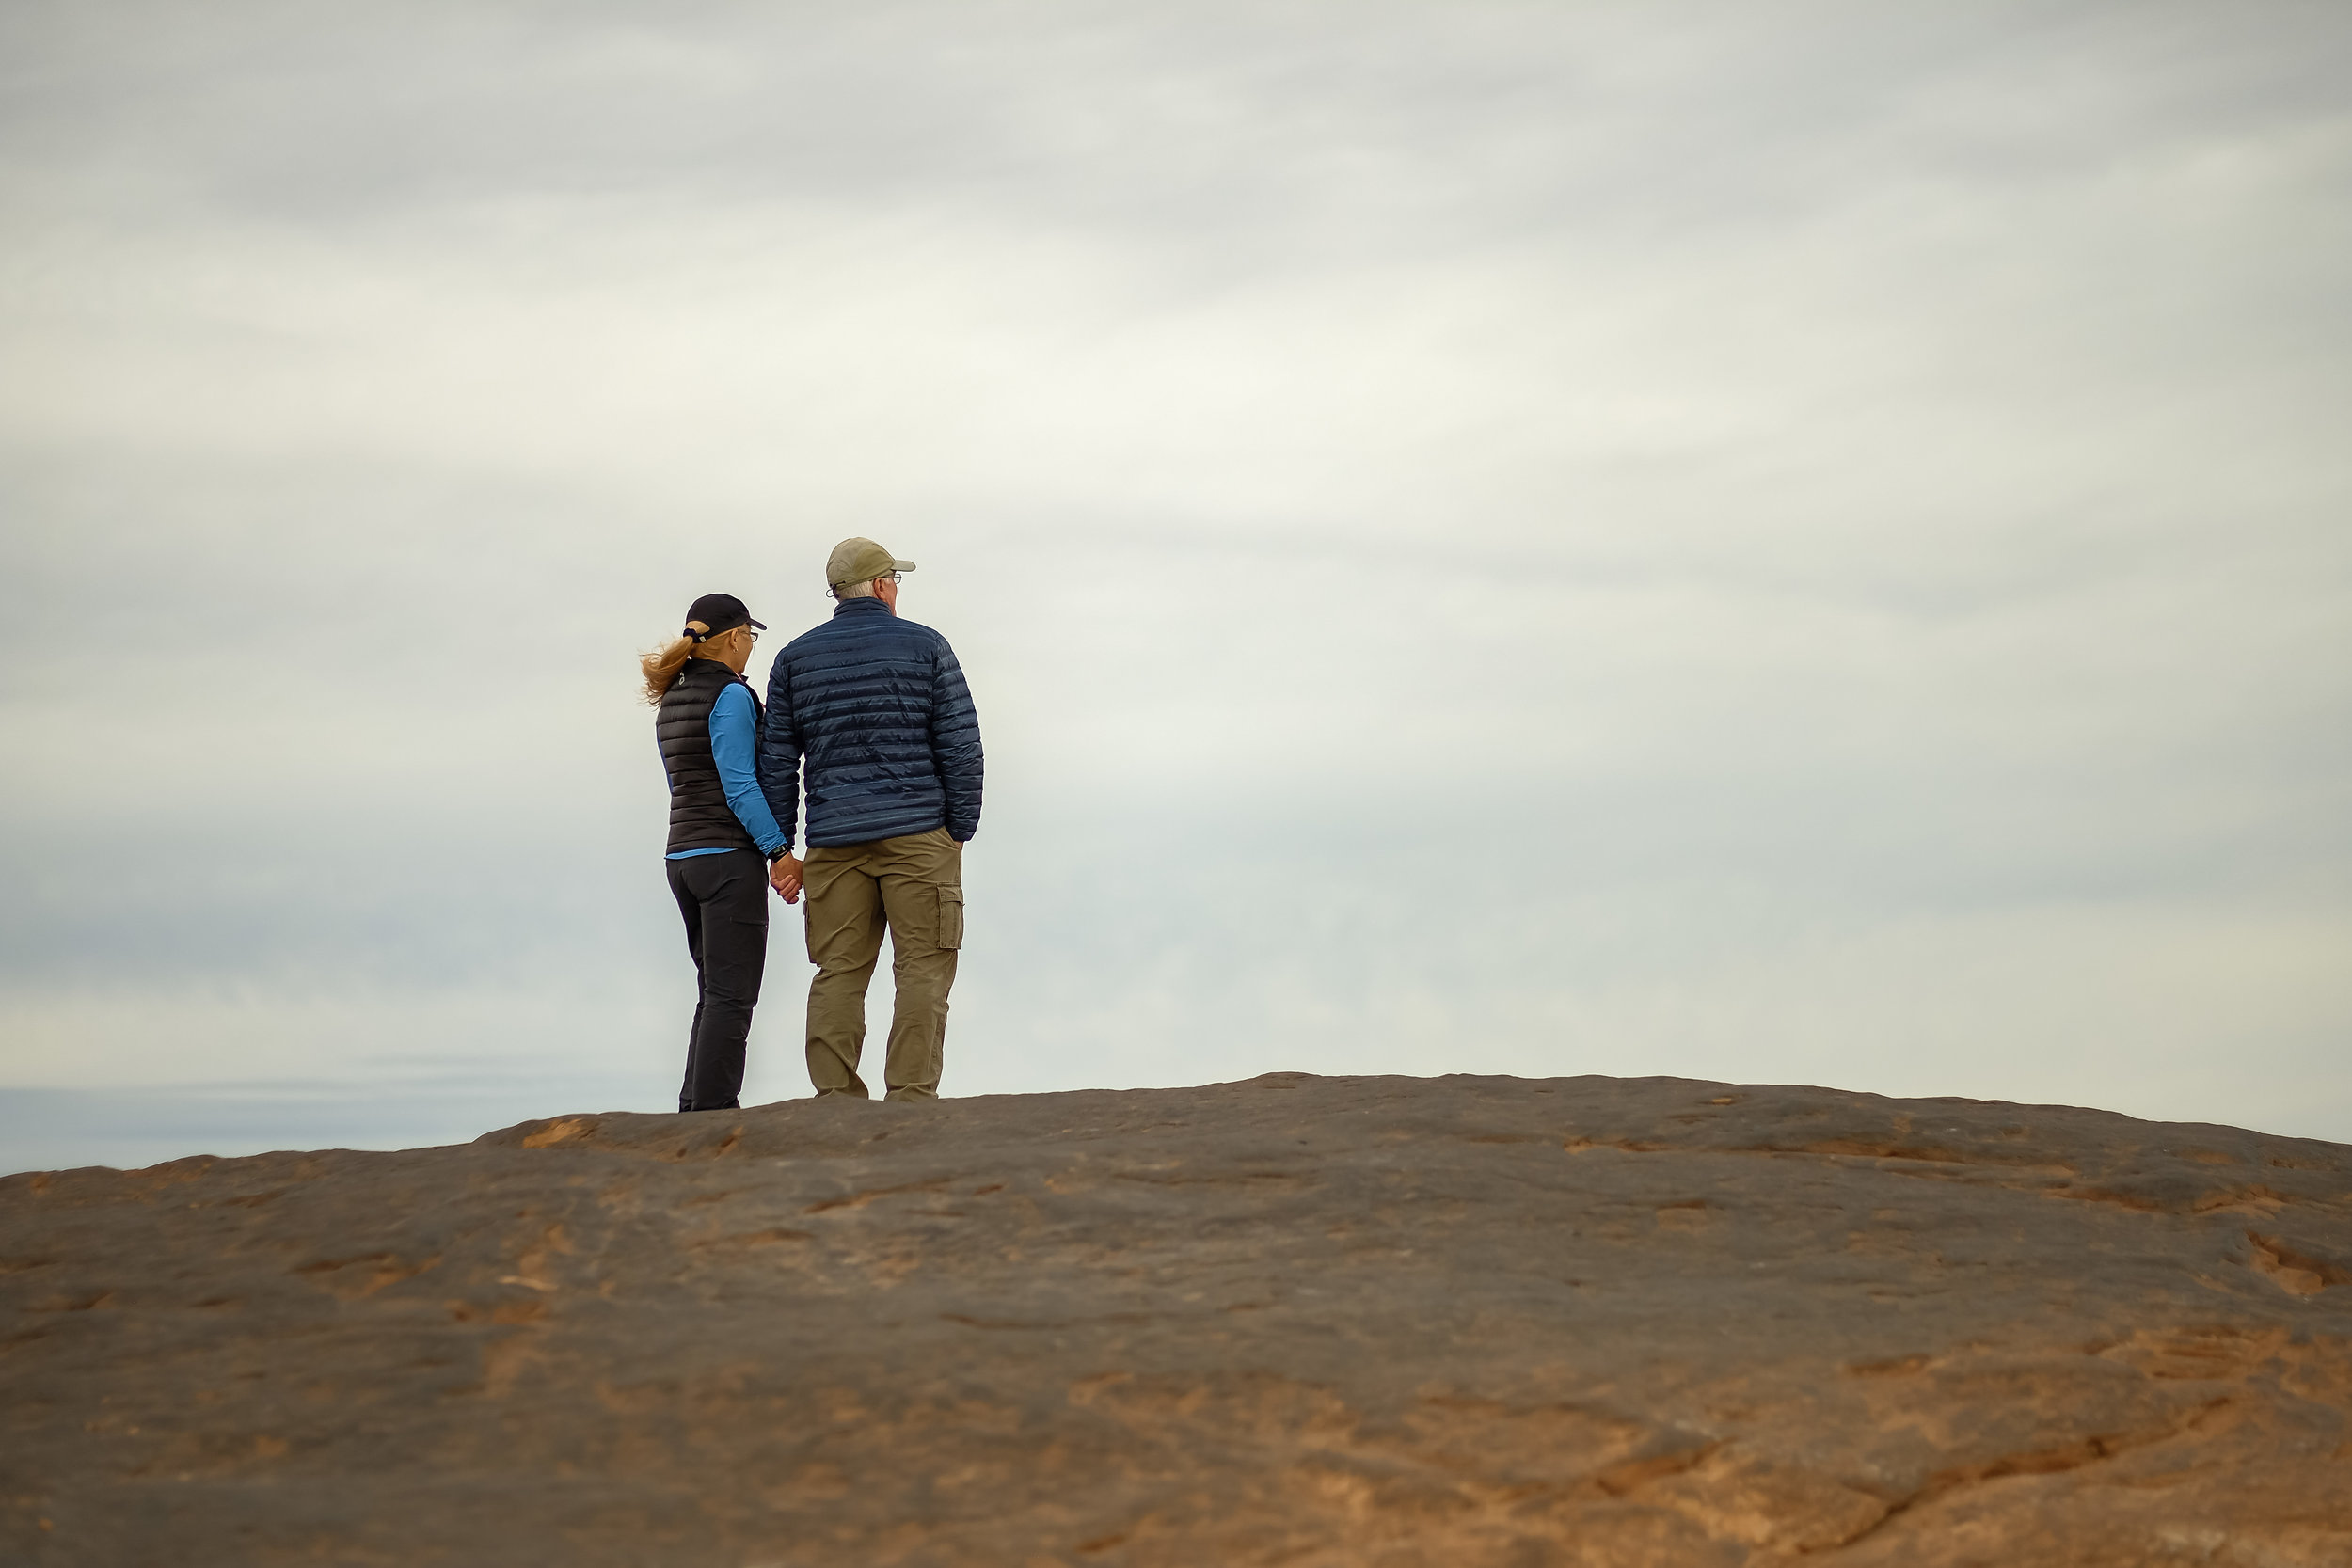 Tom and Debbie at the Overlook.  Fuji X-T2, 56mm f/1.2 Lens